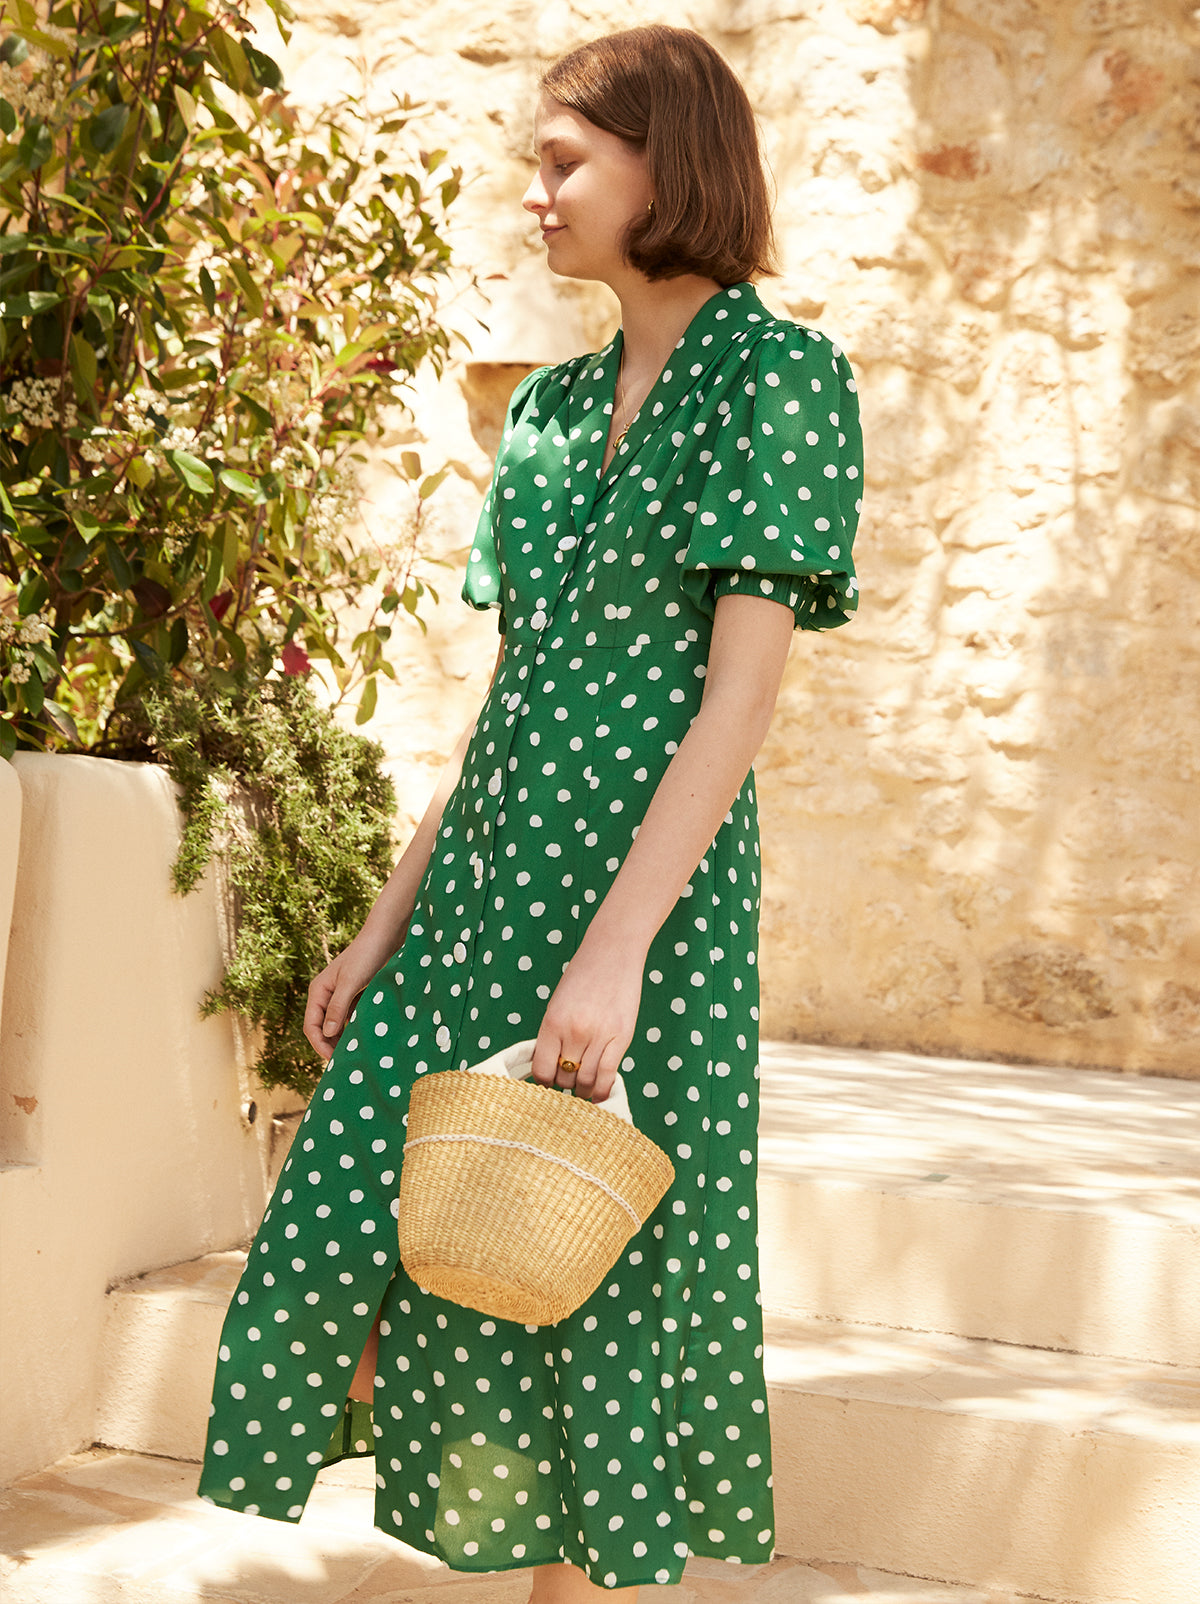 Siena Green Polka Dot Tea Dress by KITRI Studio